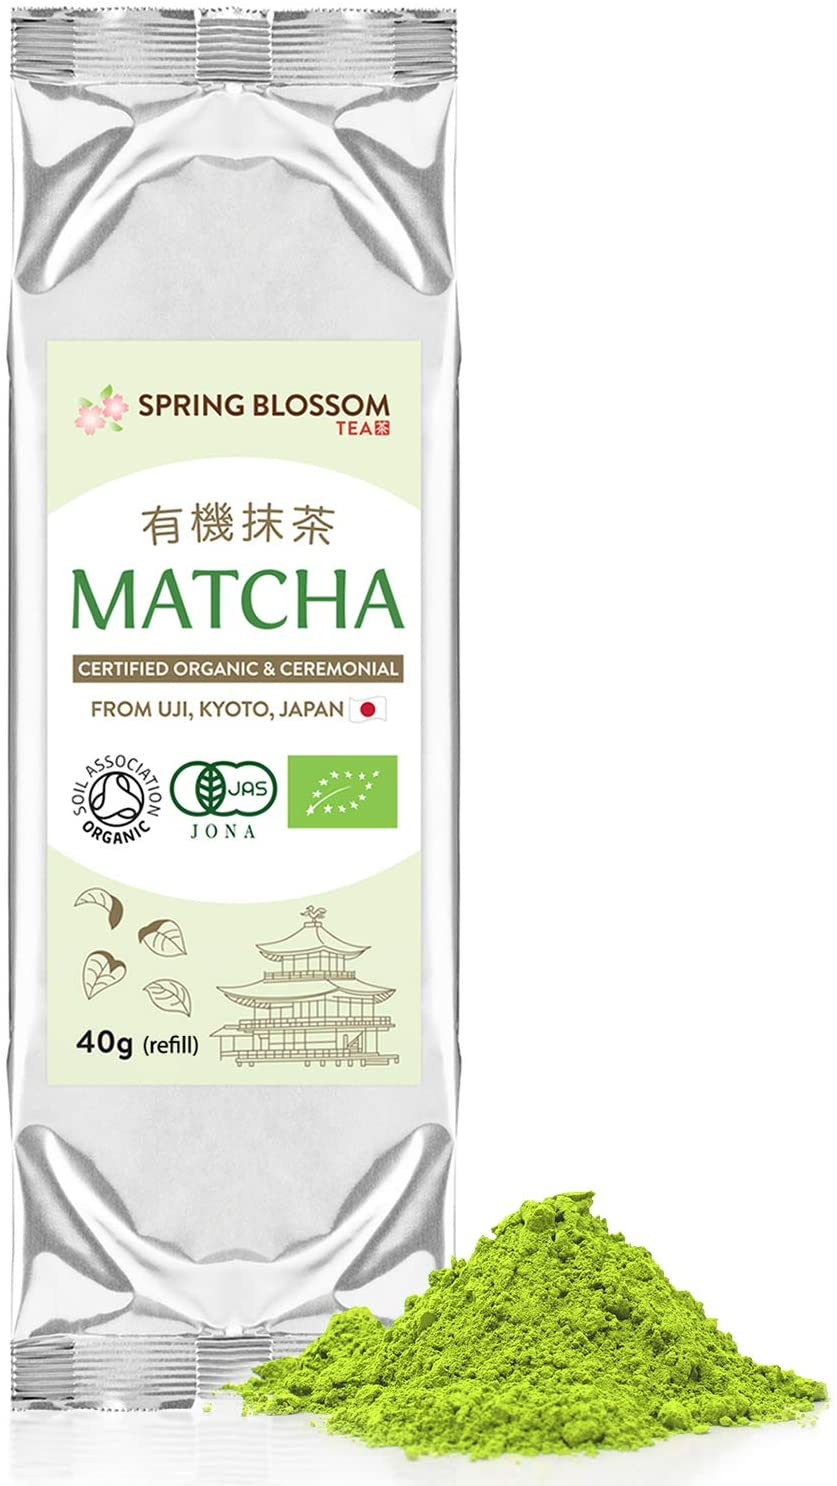 Spring Blossom Organic MATCHA Green Tea Powder